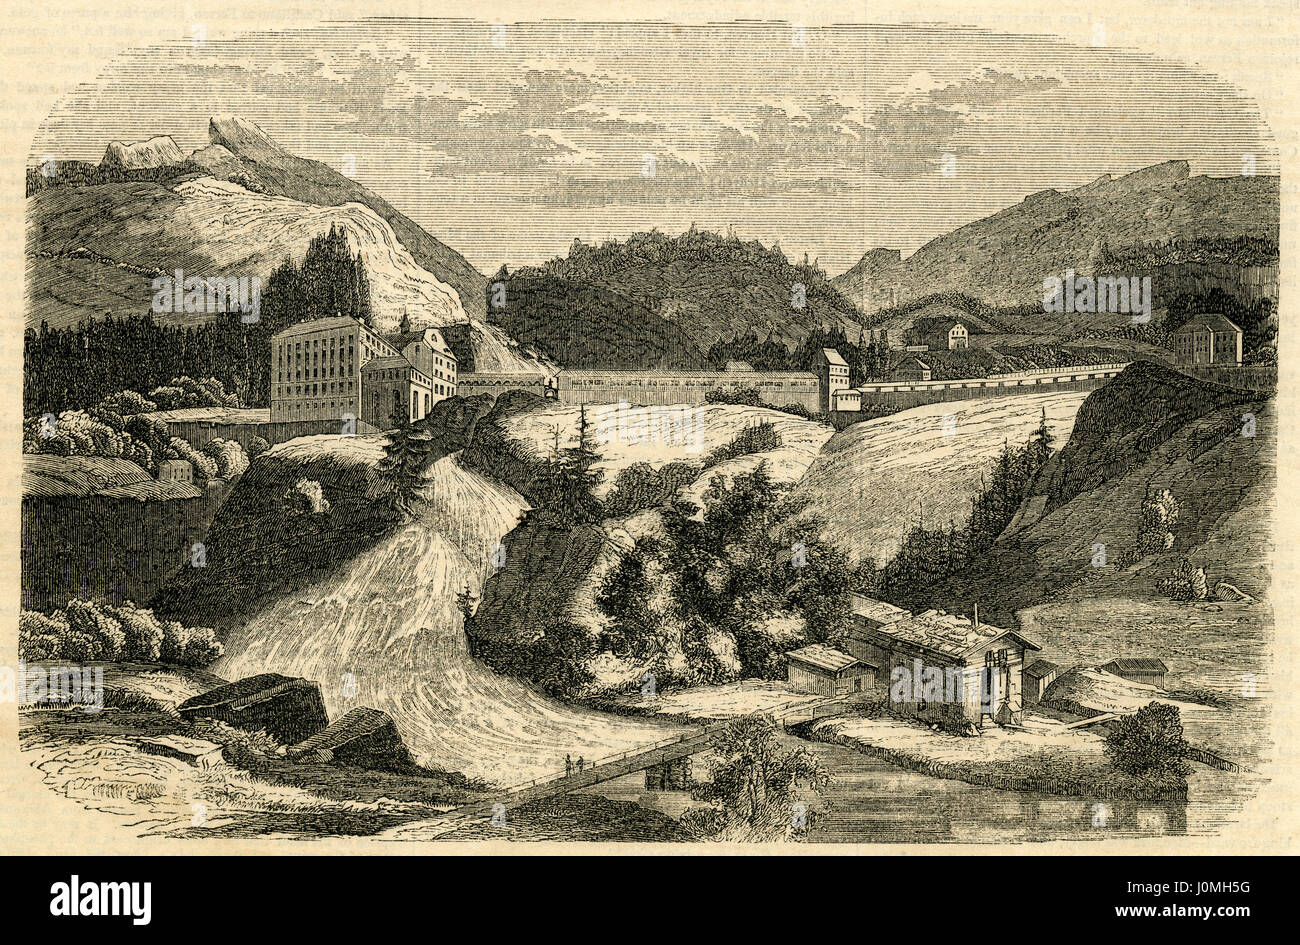 Antique 1854 engraving, 'Mineral Baths at Gastein in Germany.' Bad Gastein (formerly Badgastein) is a spa - Stock Image